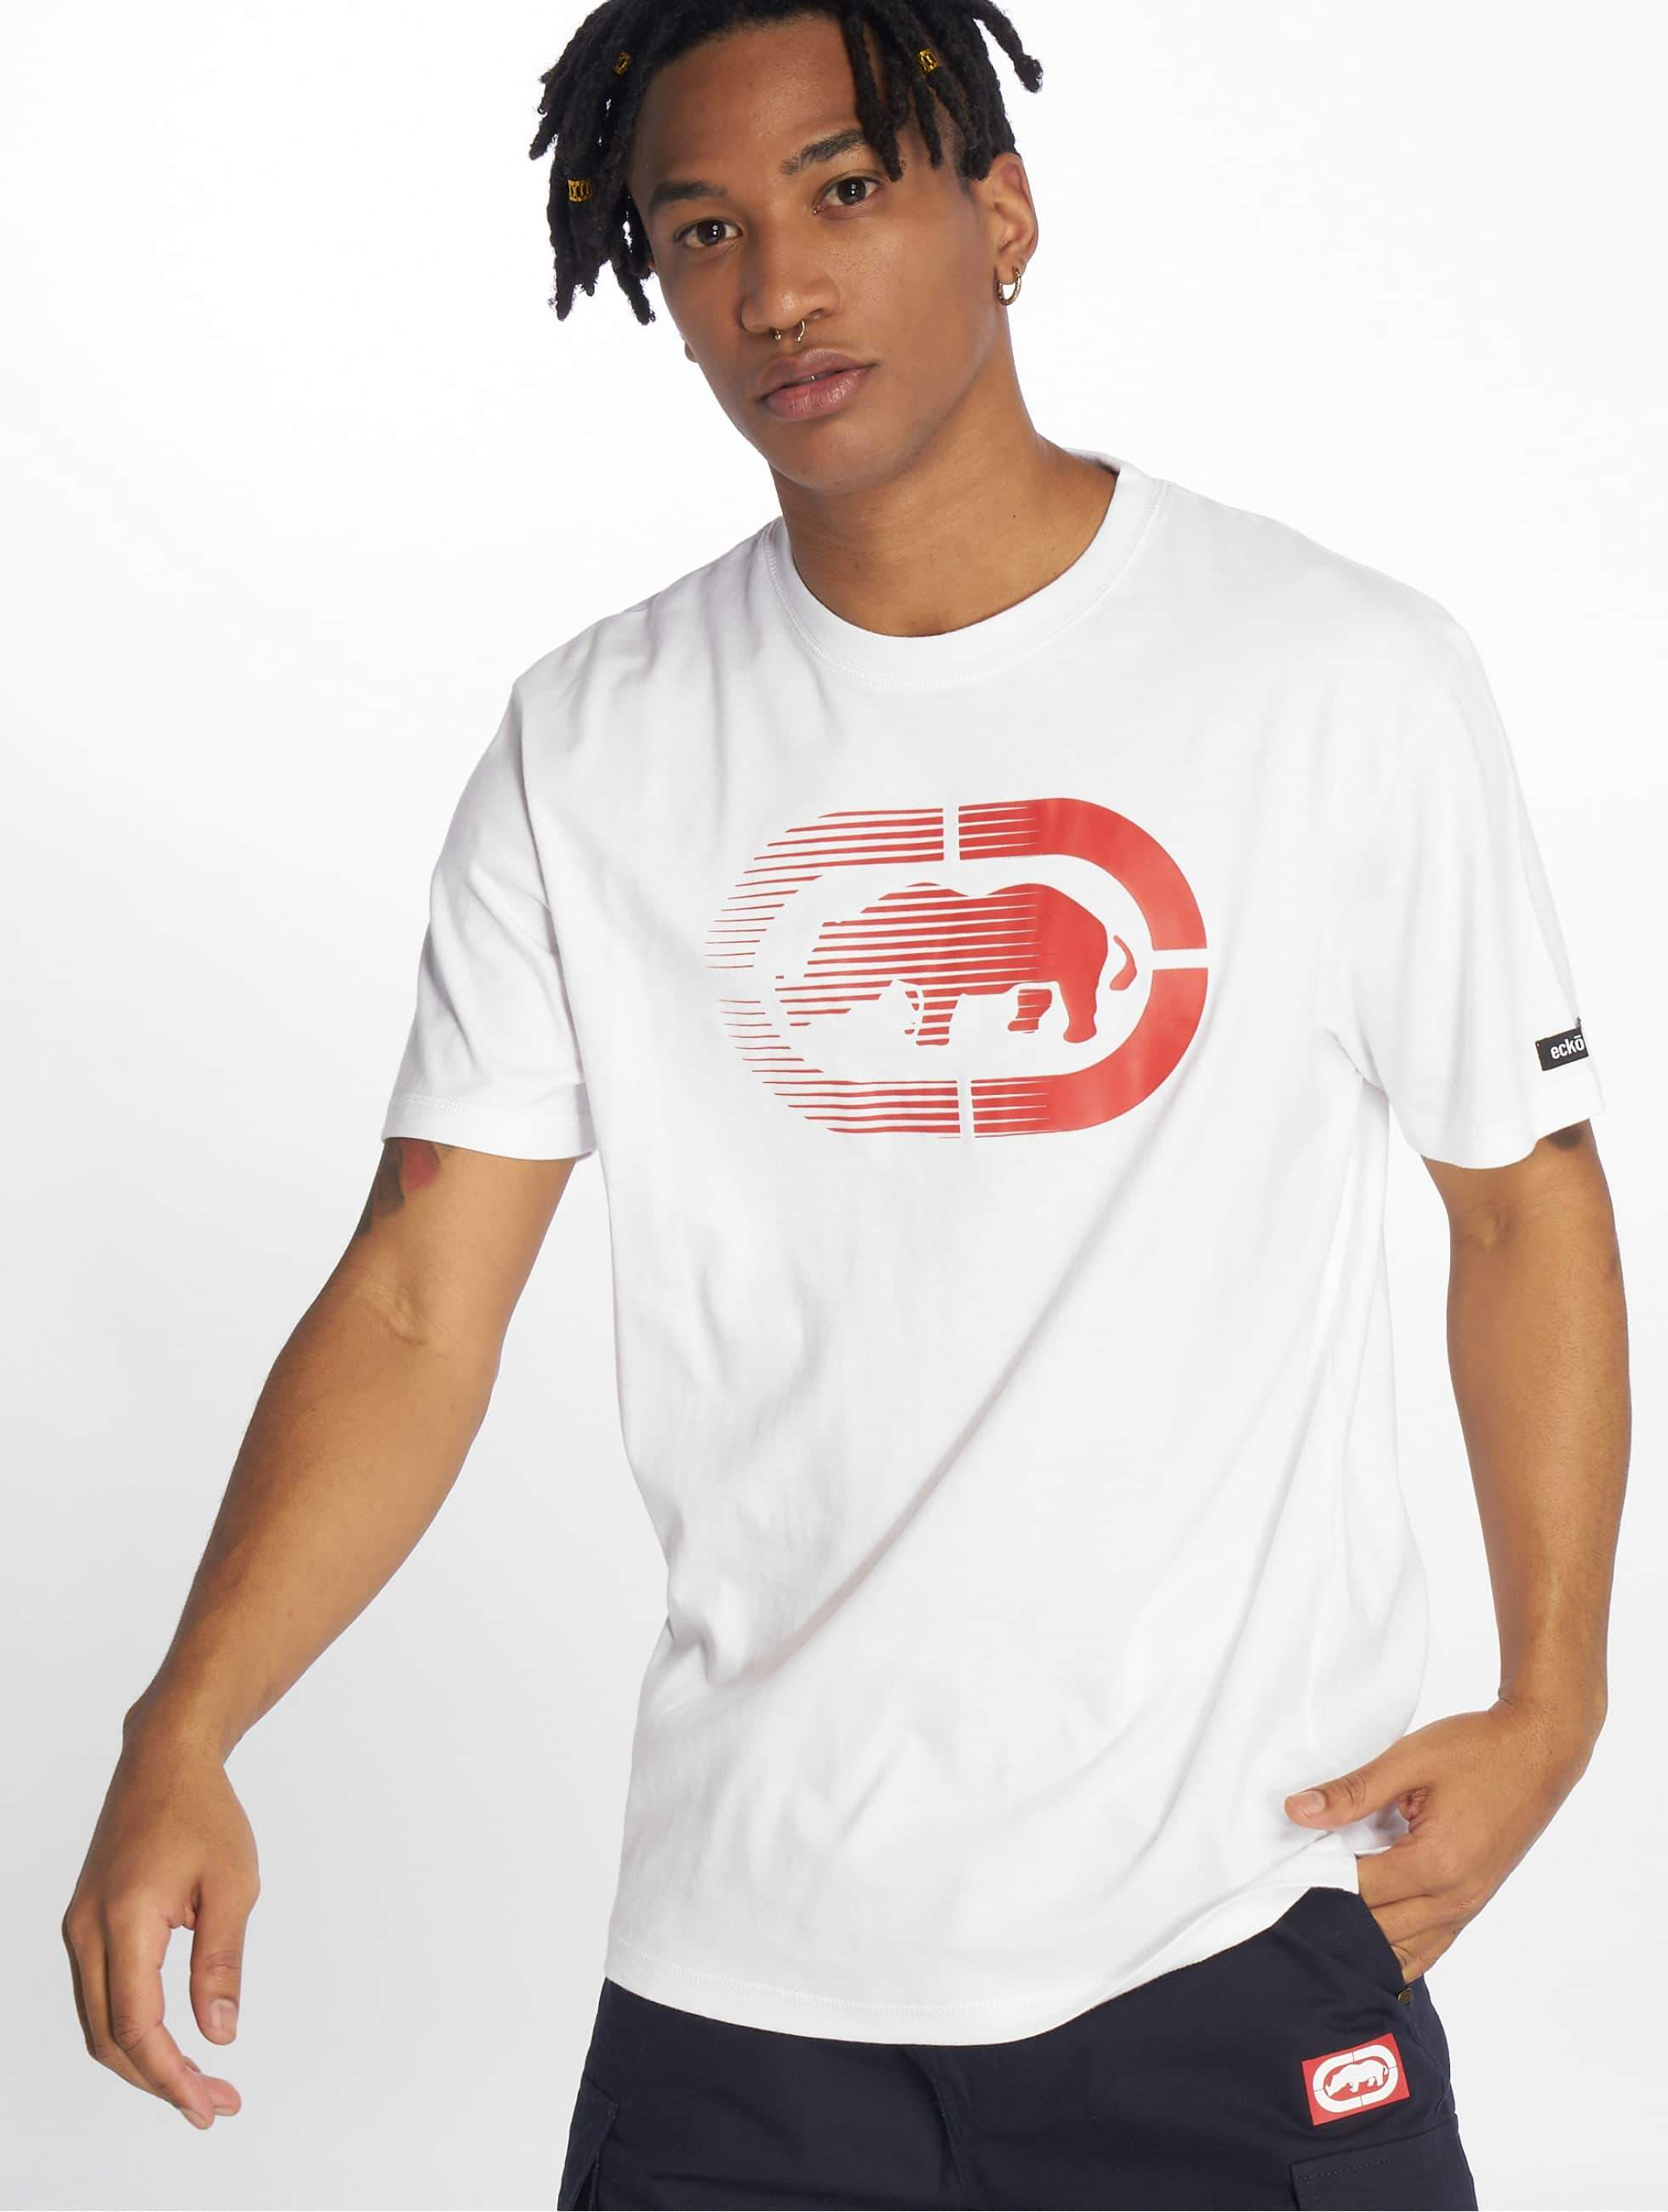 Ecko Unltd. / T-Shirt 5050 in white S